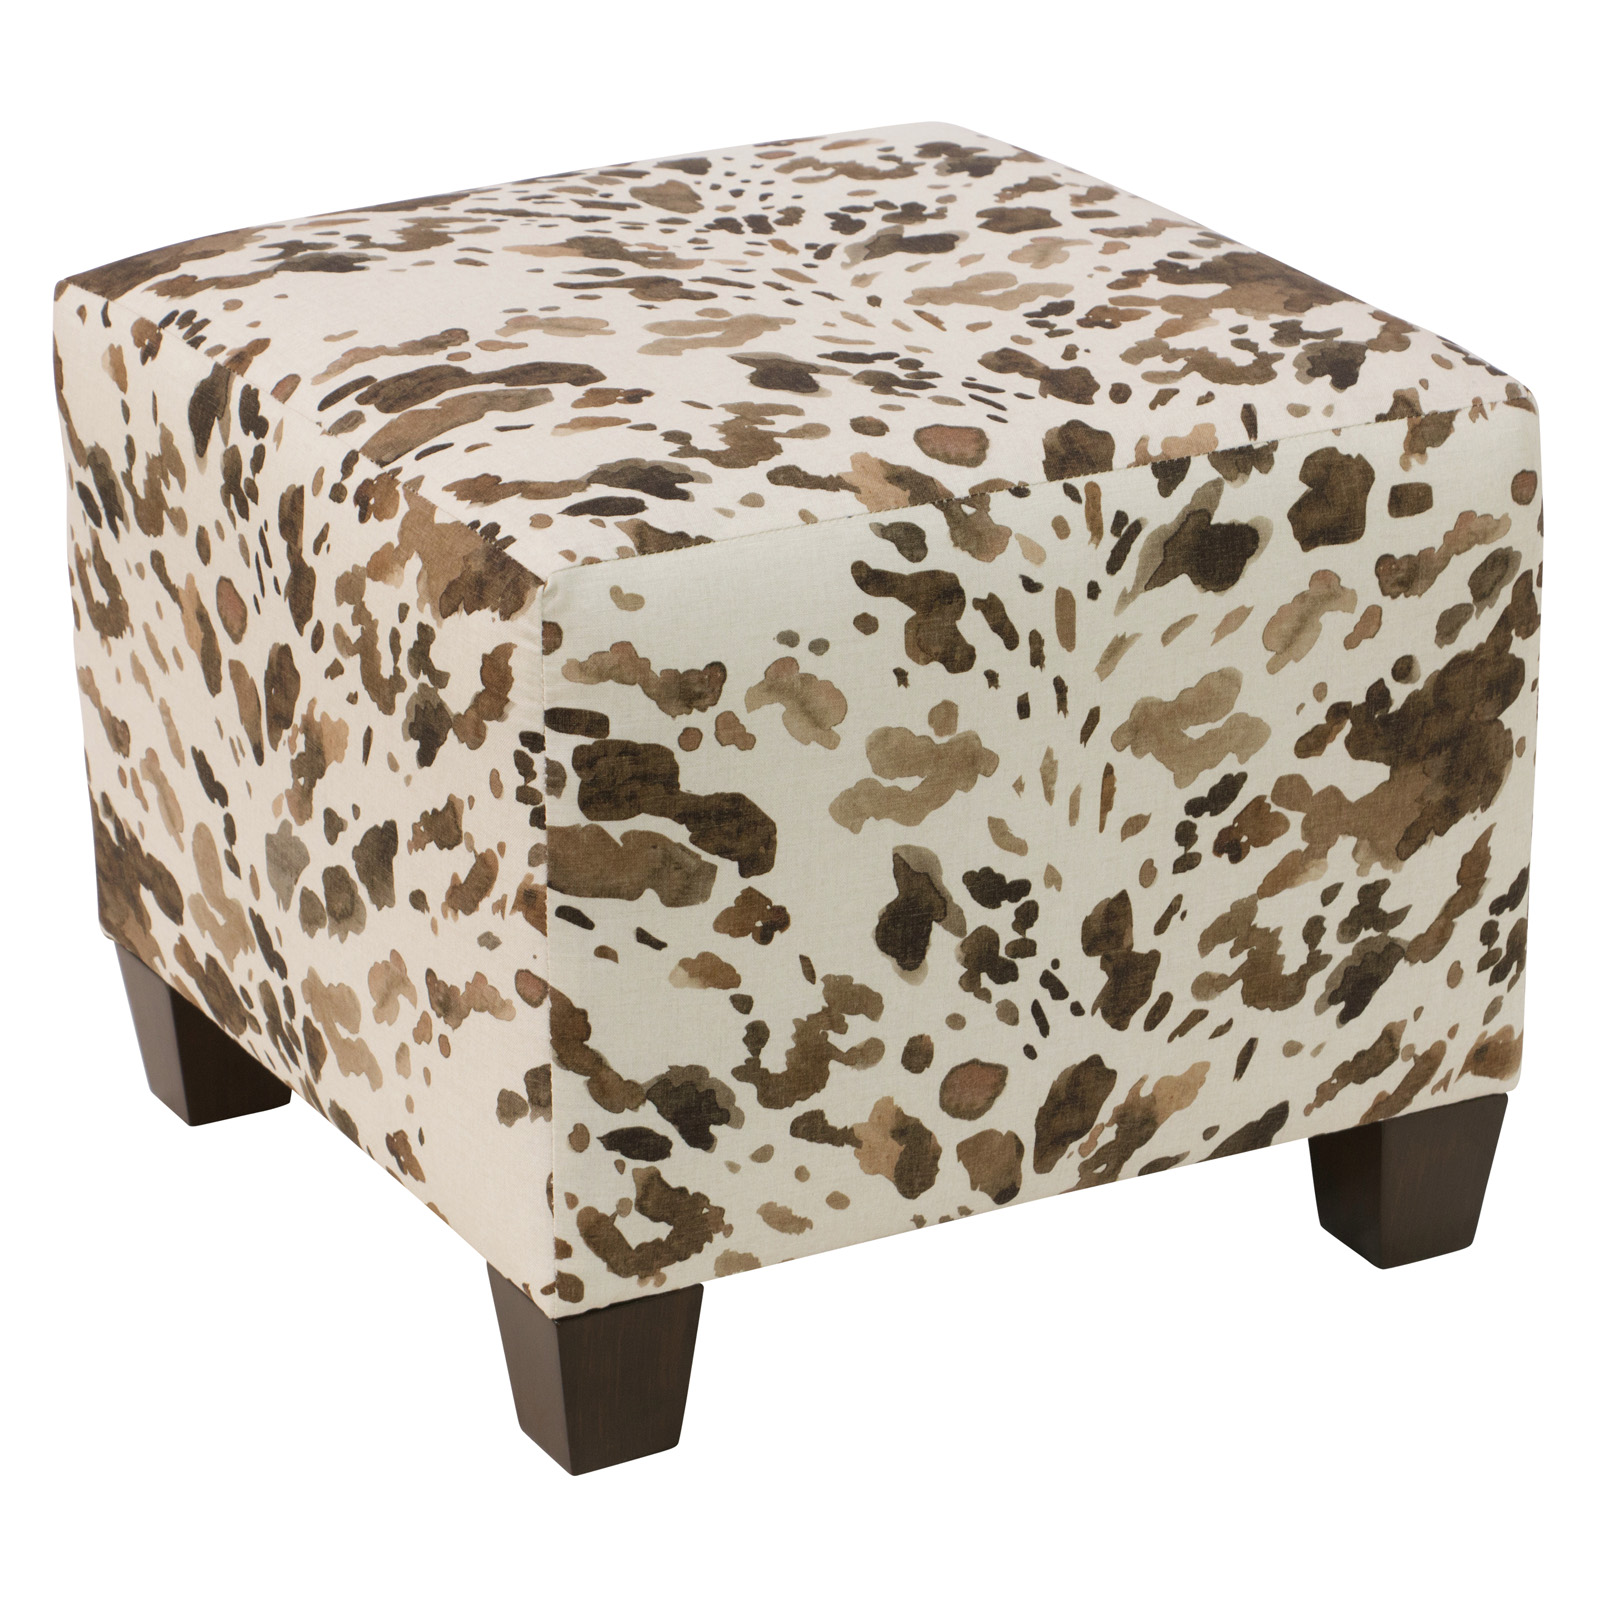 Awesome Skyline Furniture Upholstered Ottoman